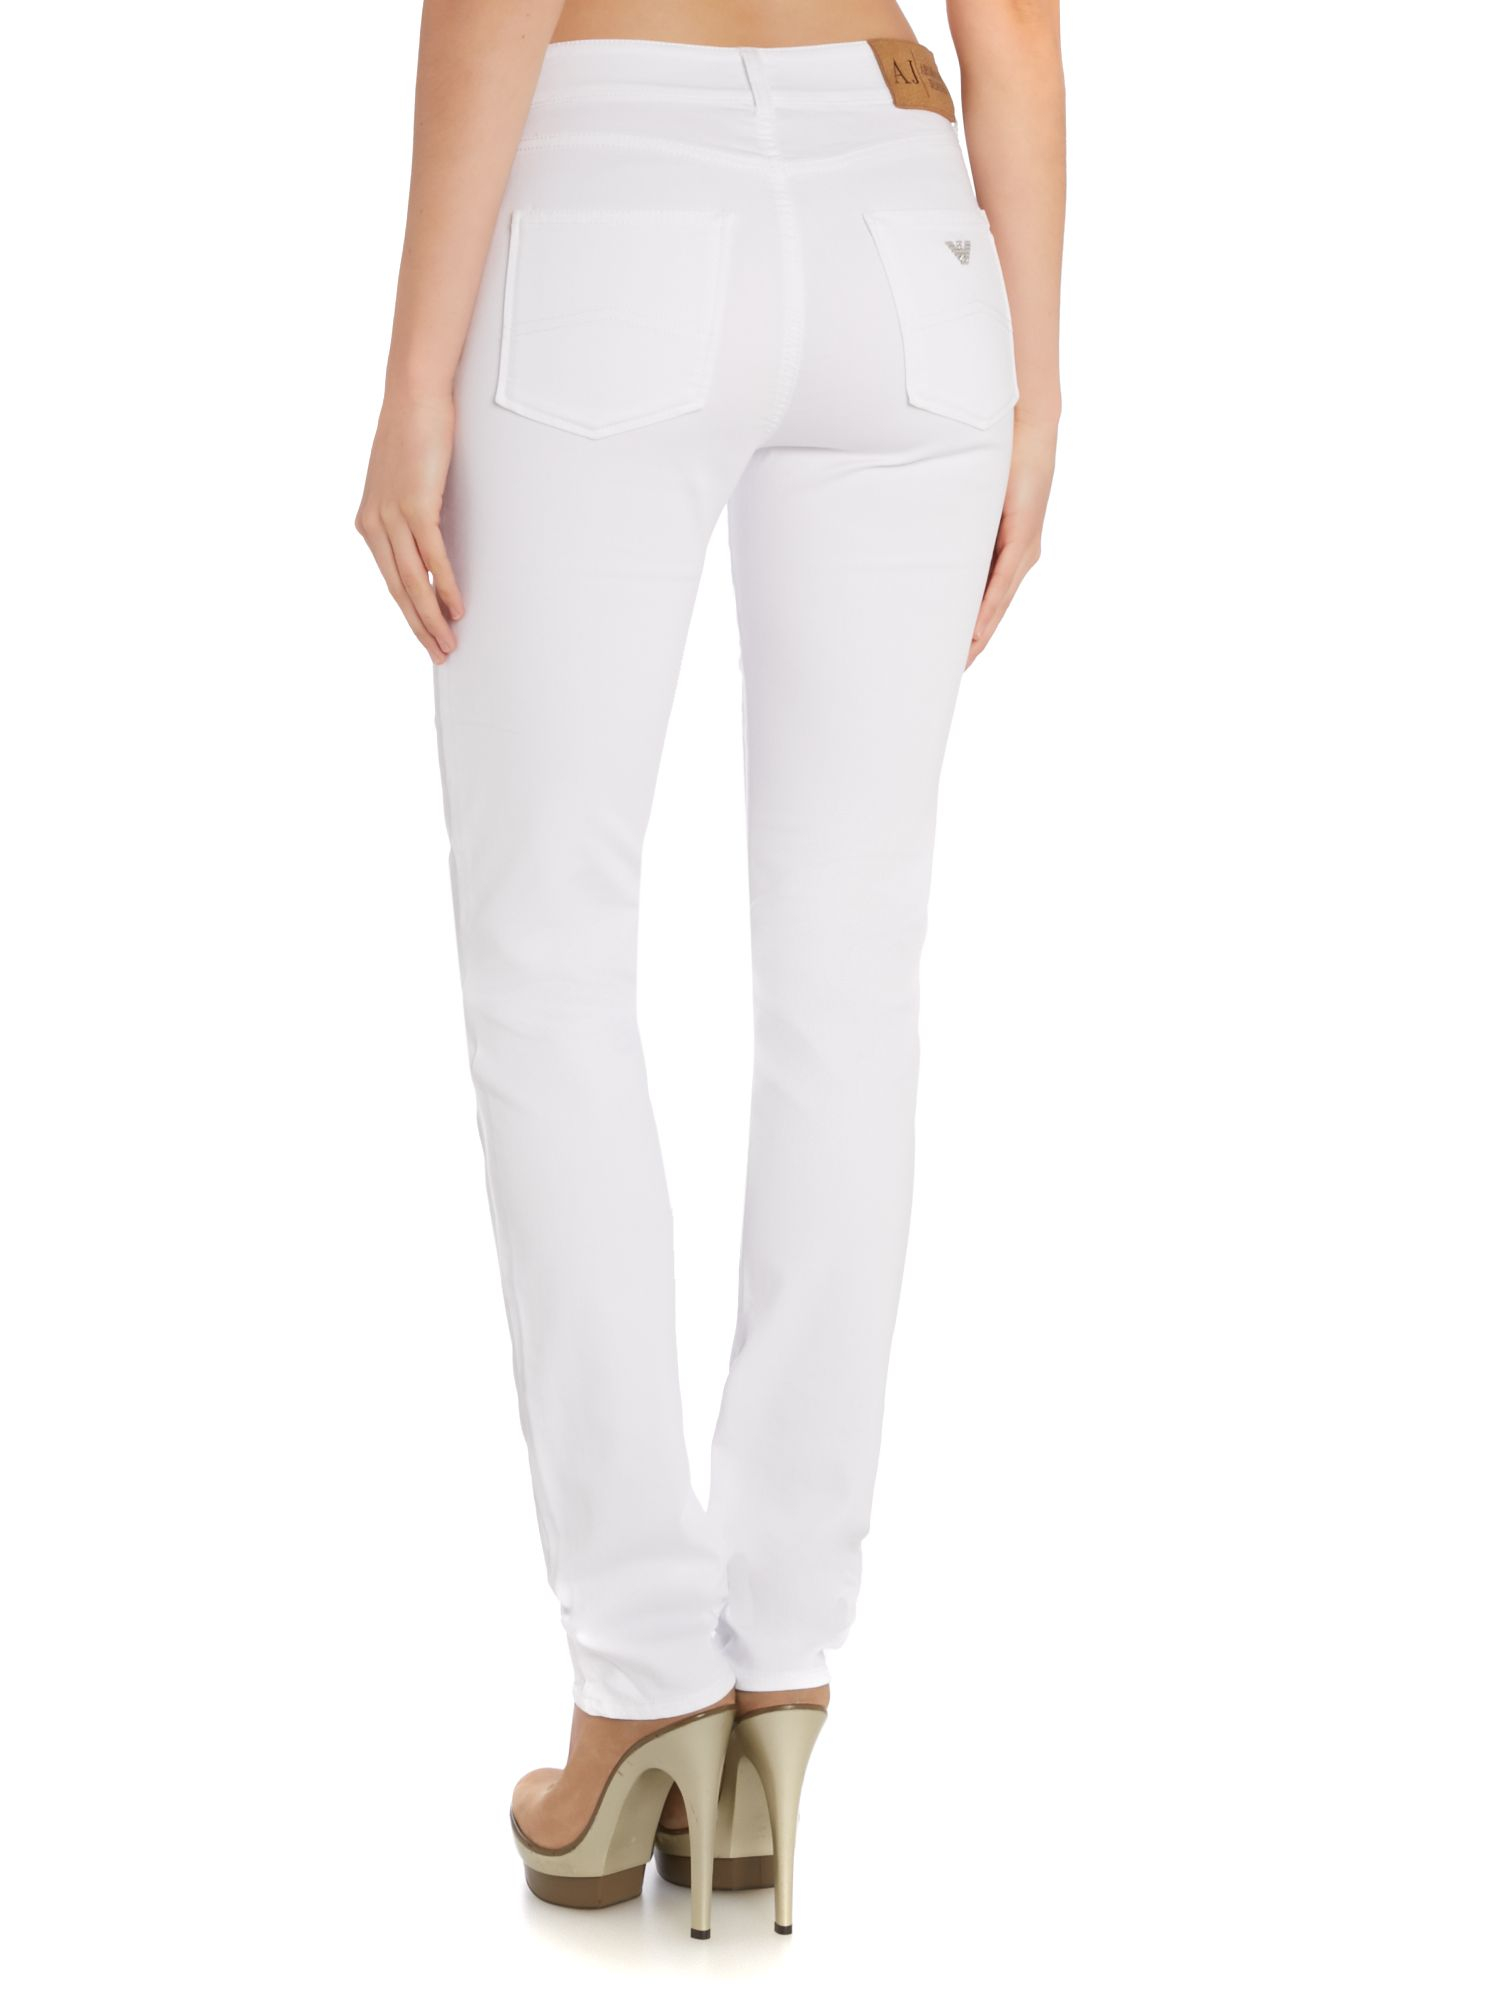 ASOS DESIGN Maternity Ridley high waist skinny jeans in white with under the bump waistband. £ ASOS DESIGN Maternity Rivington with over the bump waistband in black cord. £ ASOS DESIGN Rivington high waisted jeggings in black coated. £